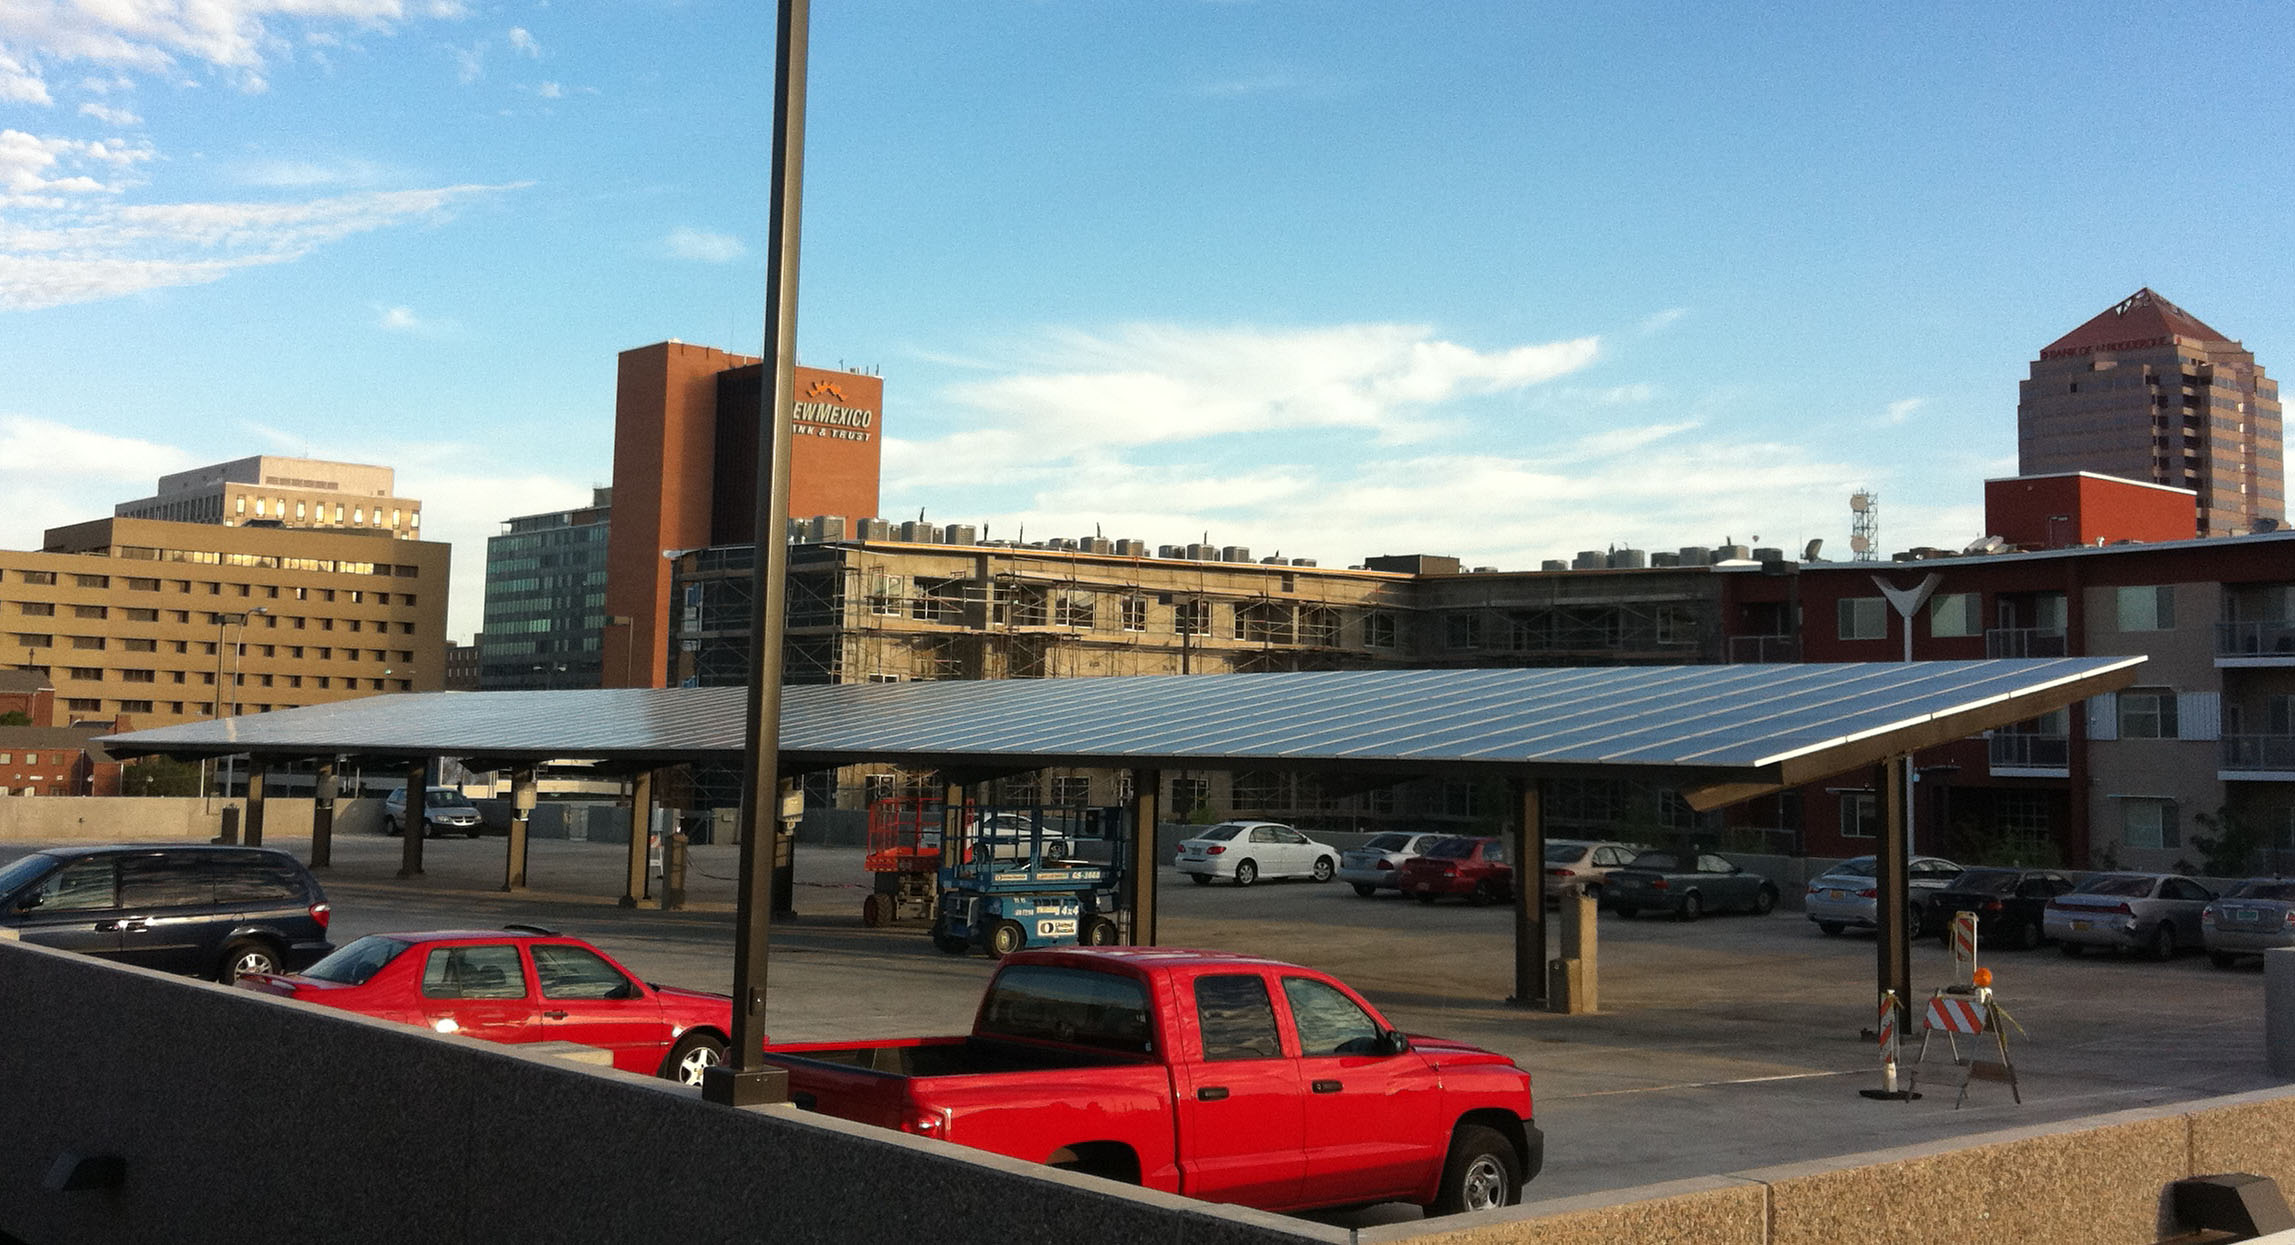 Solar covered parking structures